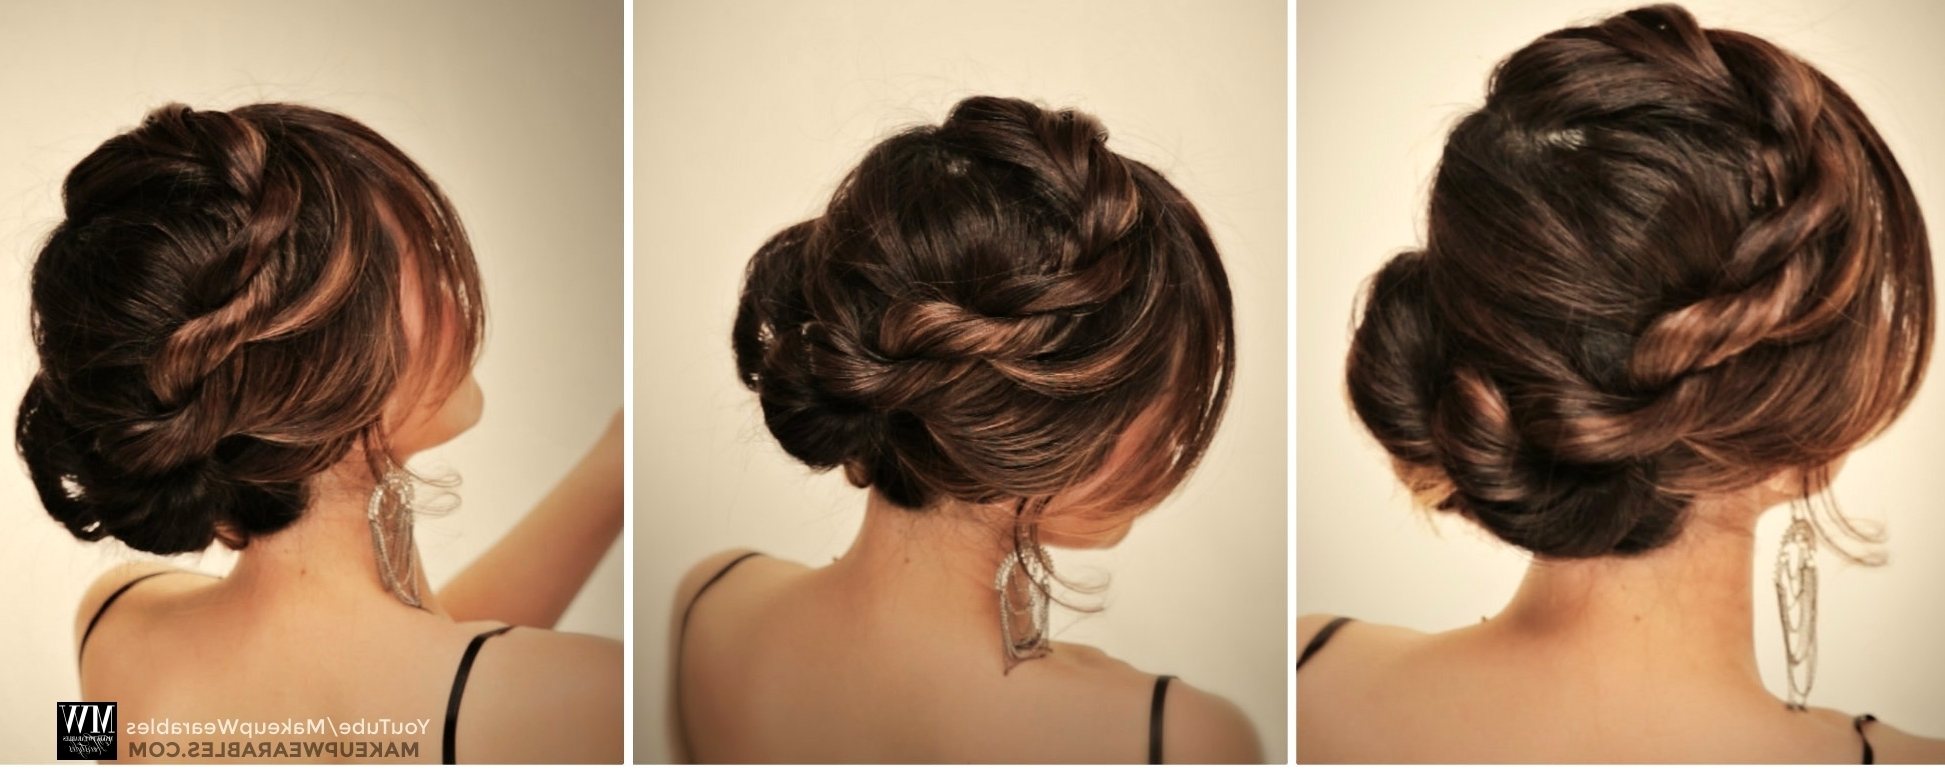 How To: 5 Amazingly Cute + Easy Hairstyles With A Simple Twist Regarding Quick Updo Hairstyles For Long Hair (View 13 of 15)